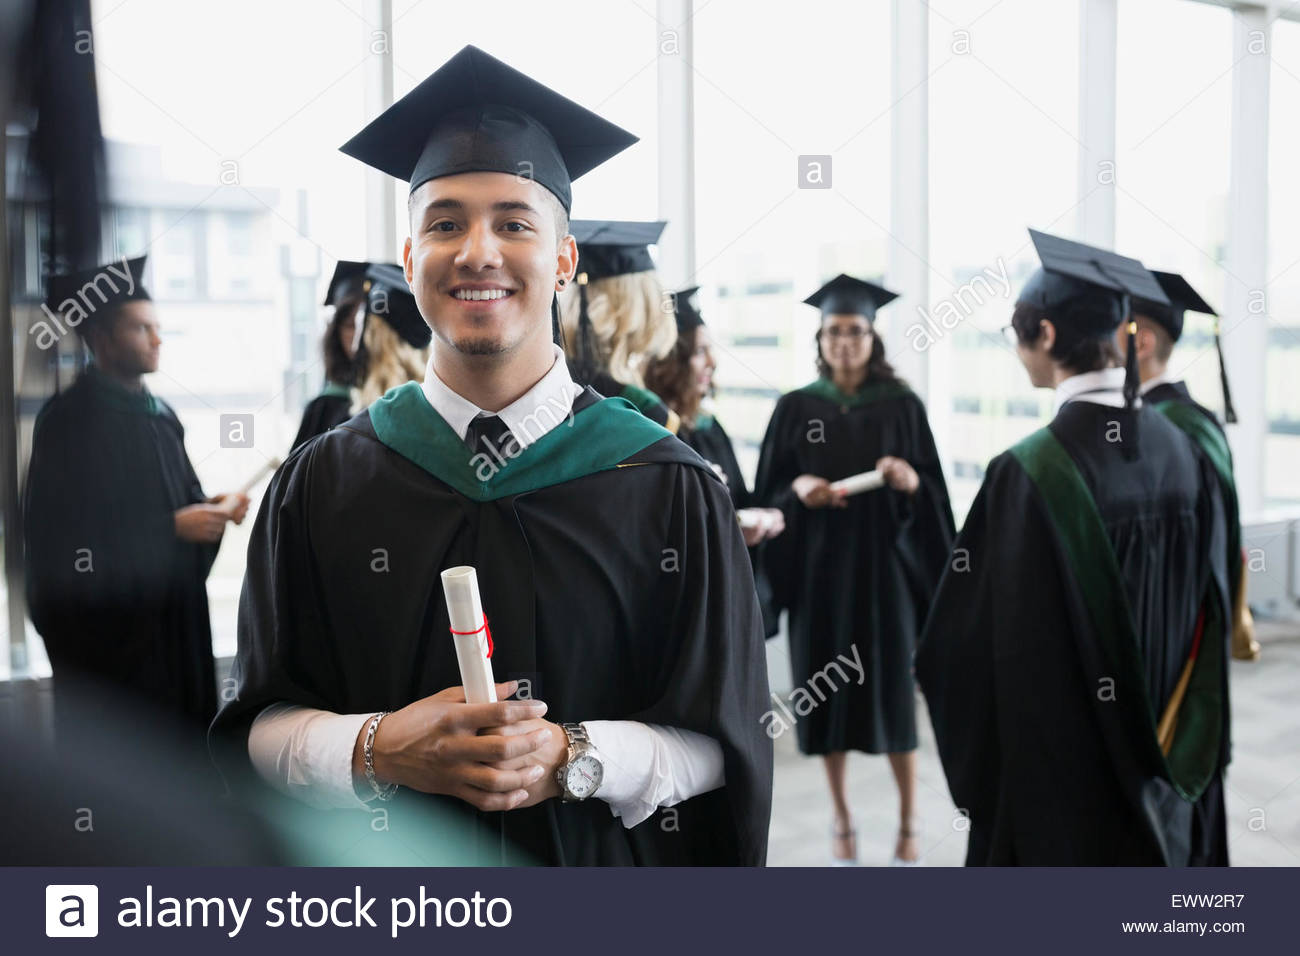 Graduation Gown Asian Stock Photos & Graduation Gown Asian Stock ...